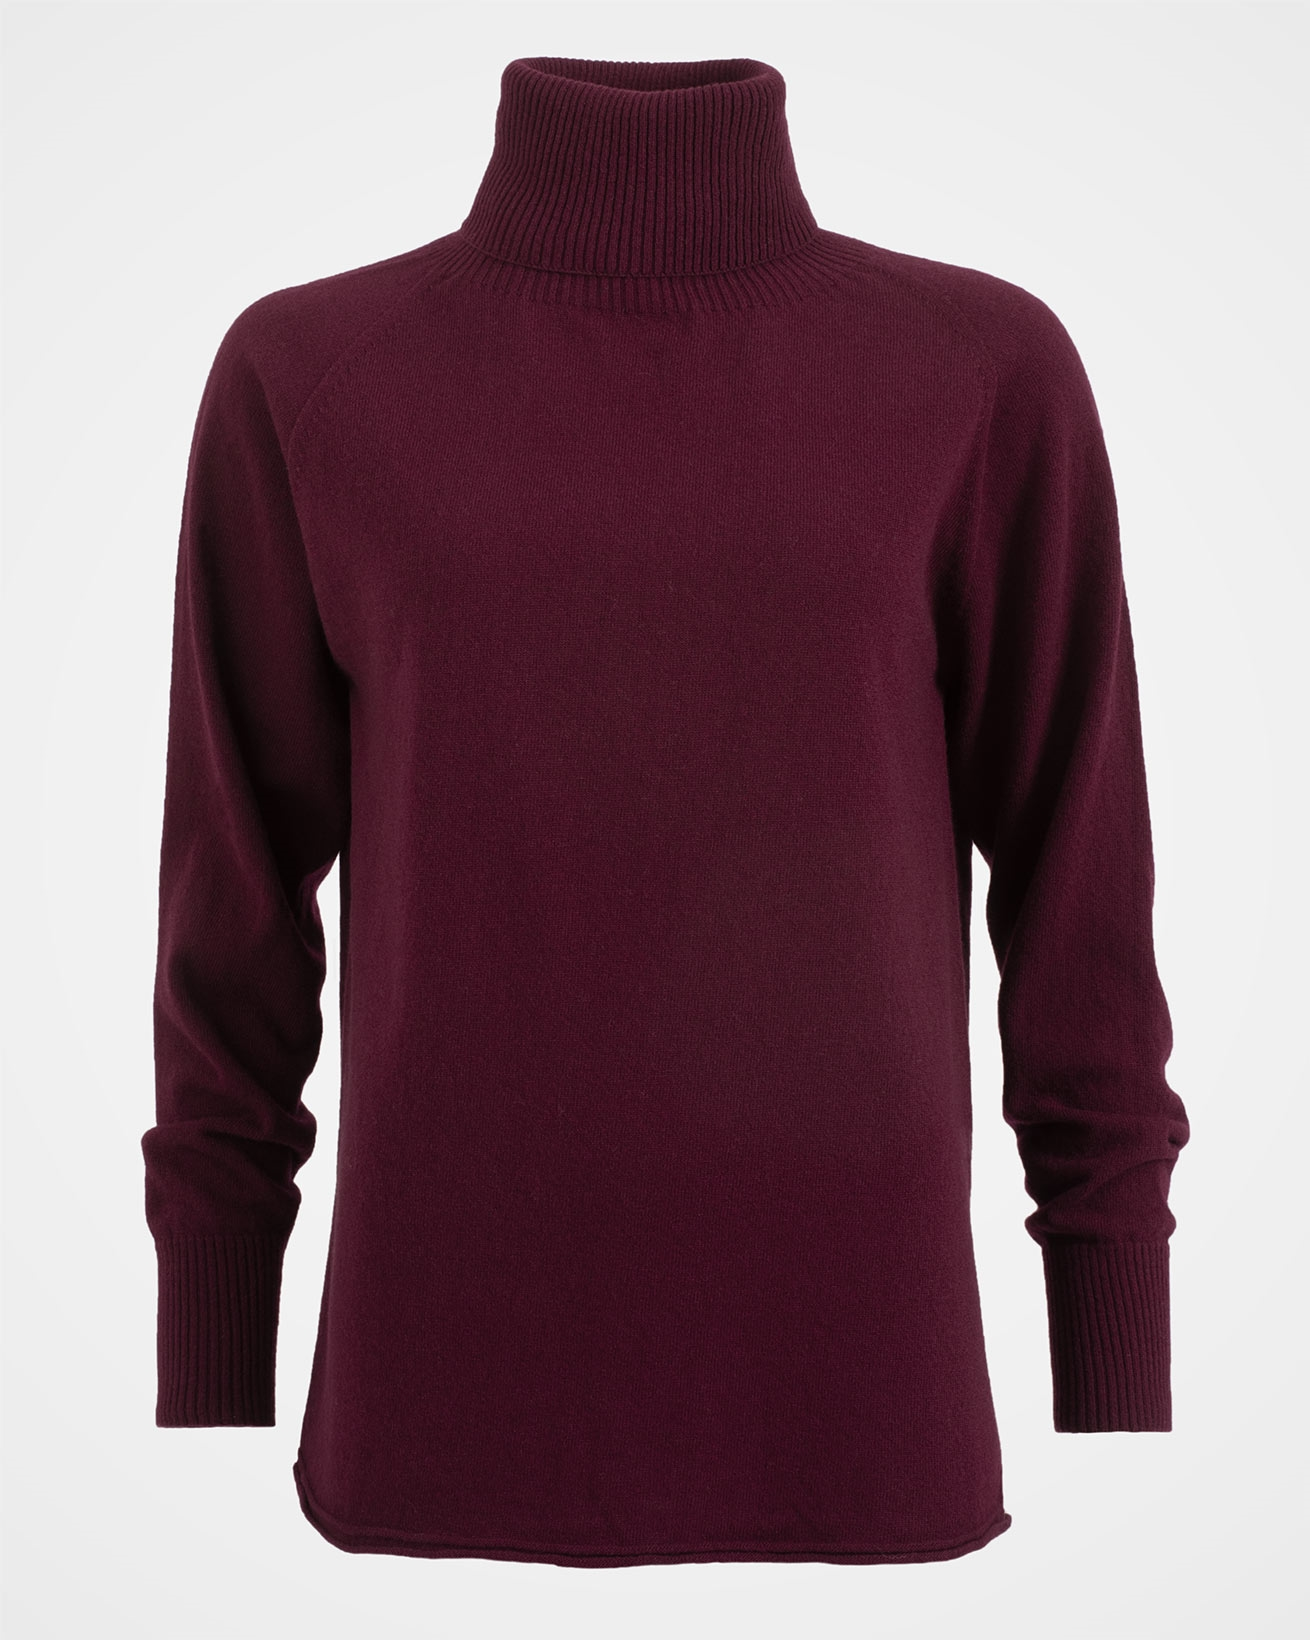 7505_geelong-slouch-roll-neck_sloeberry_front.jpg